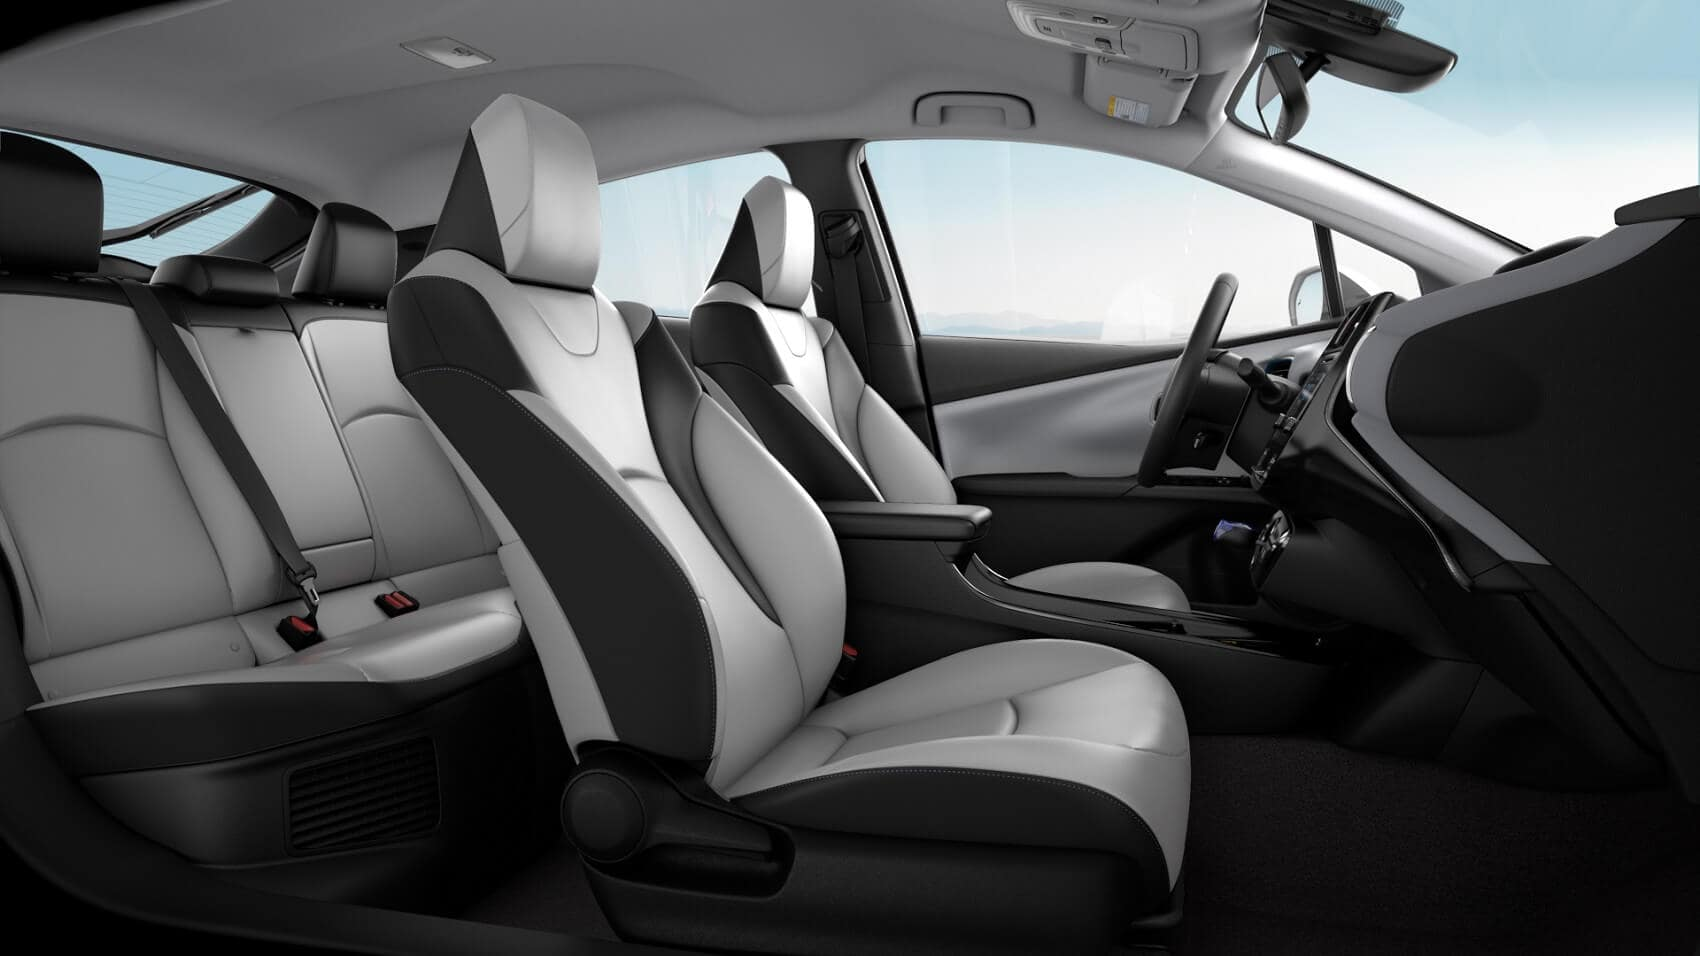 Toyota Prius Interior Features and Dimensions